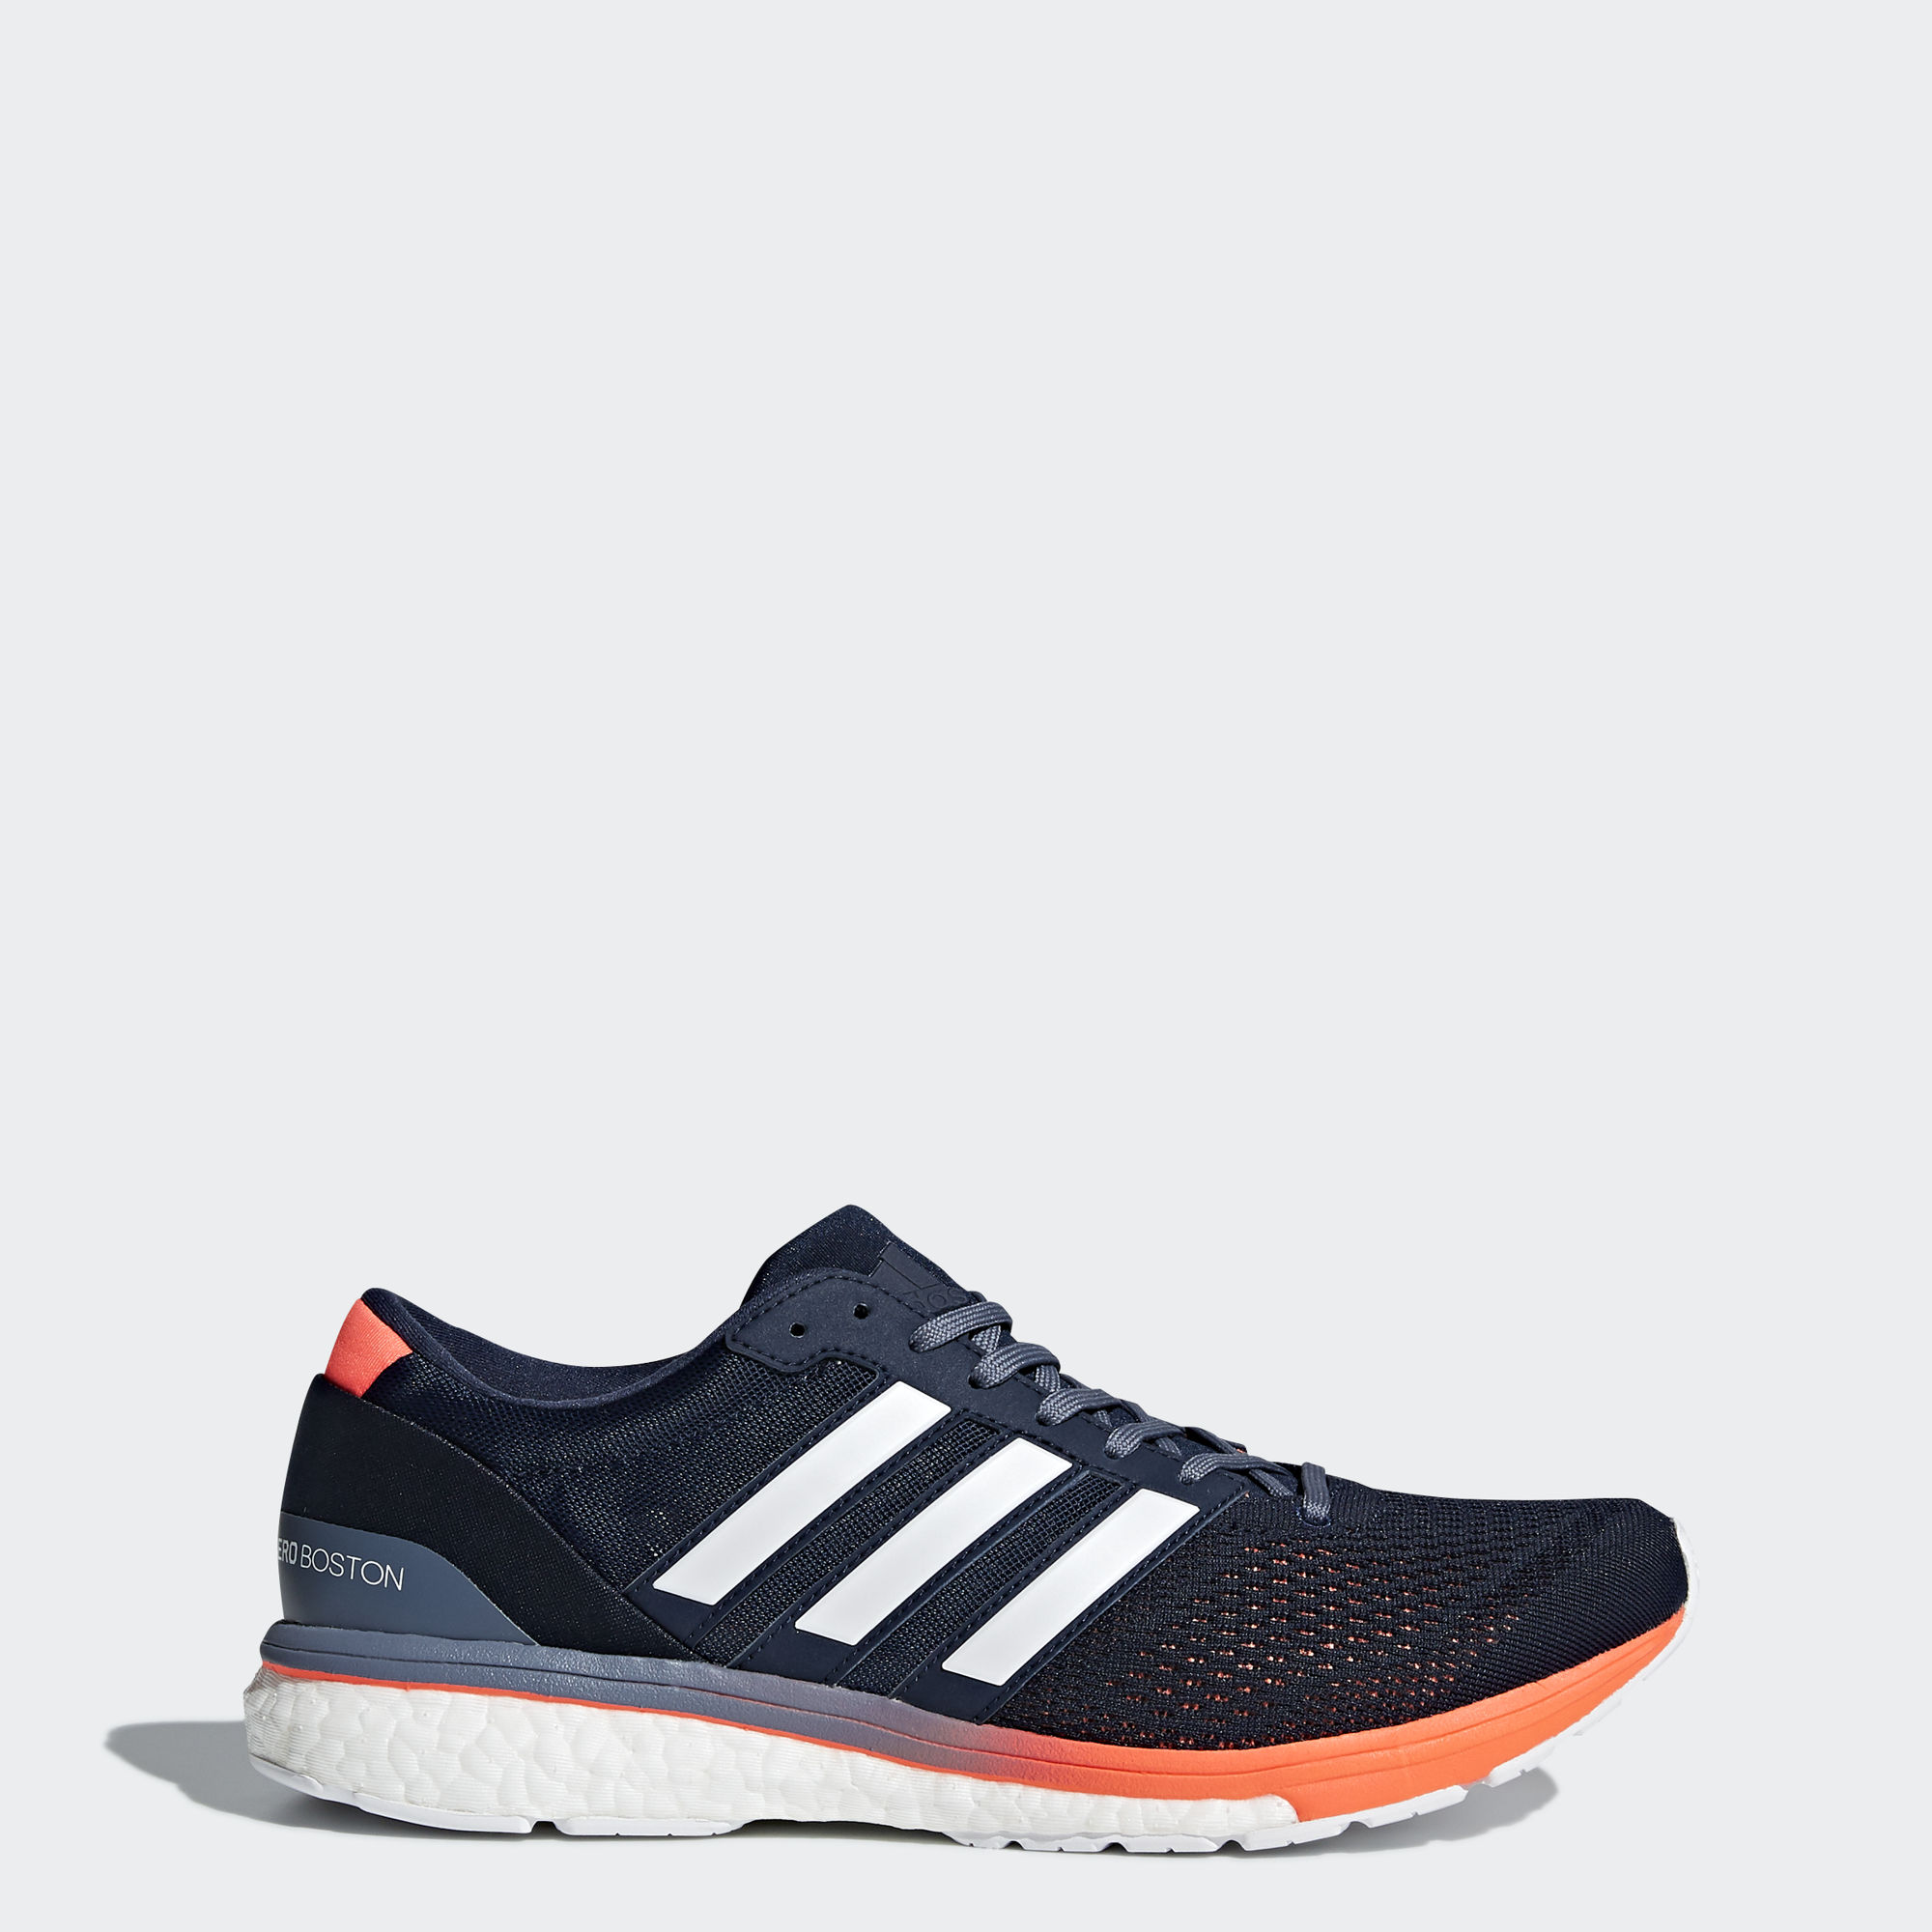 adidas Adizero Boston 6 in Blau Orange